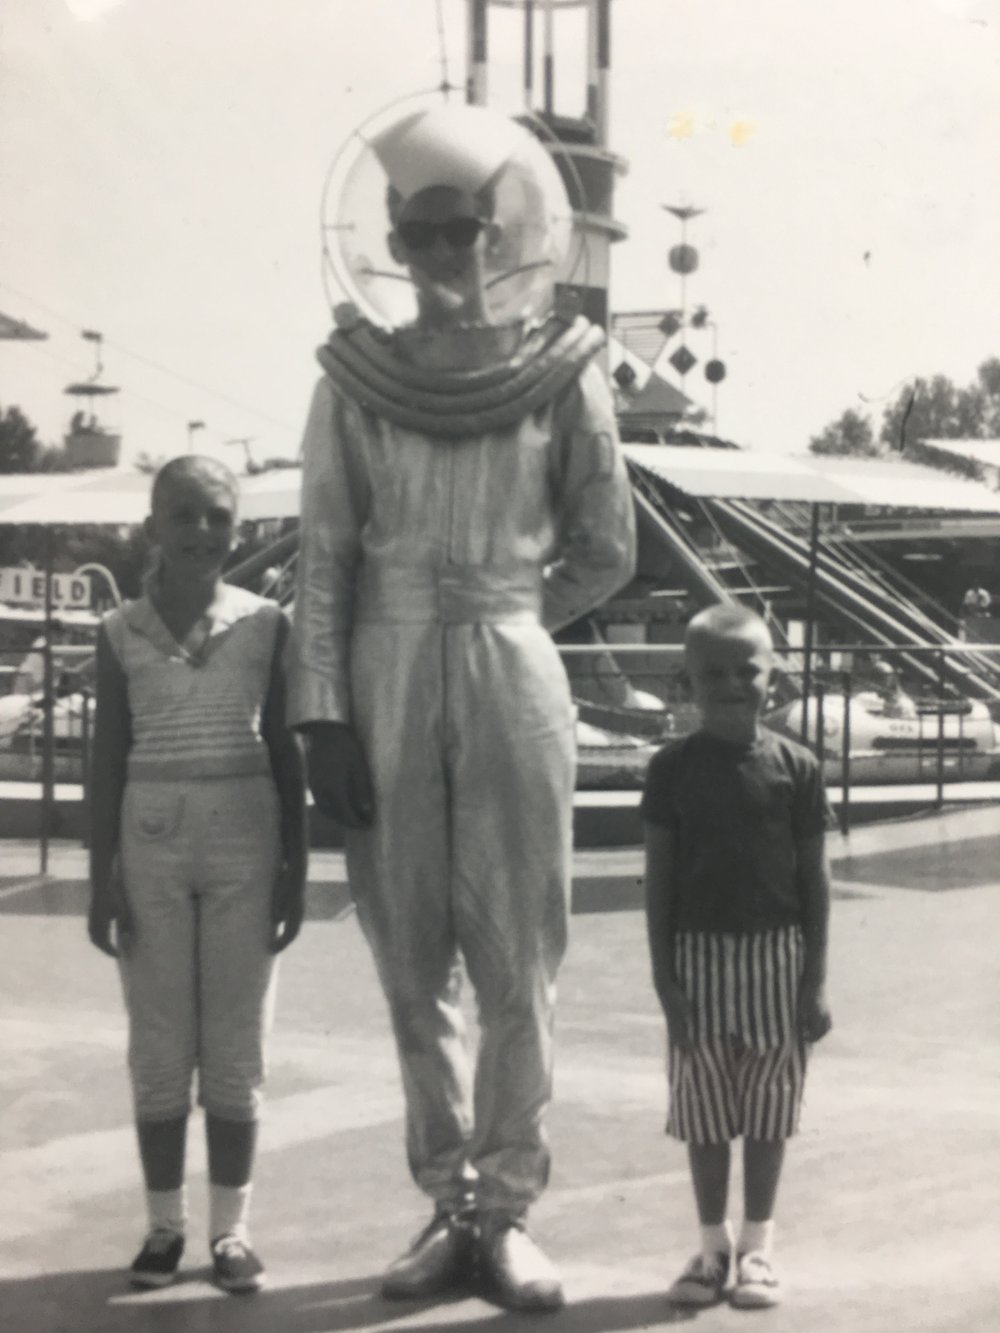 Disneyland 1965 with sister & astronaut character